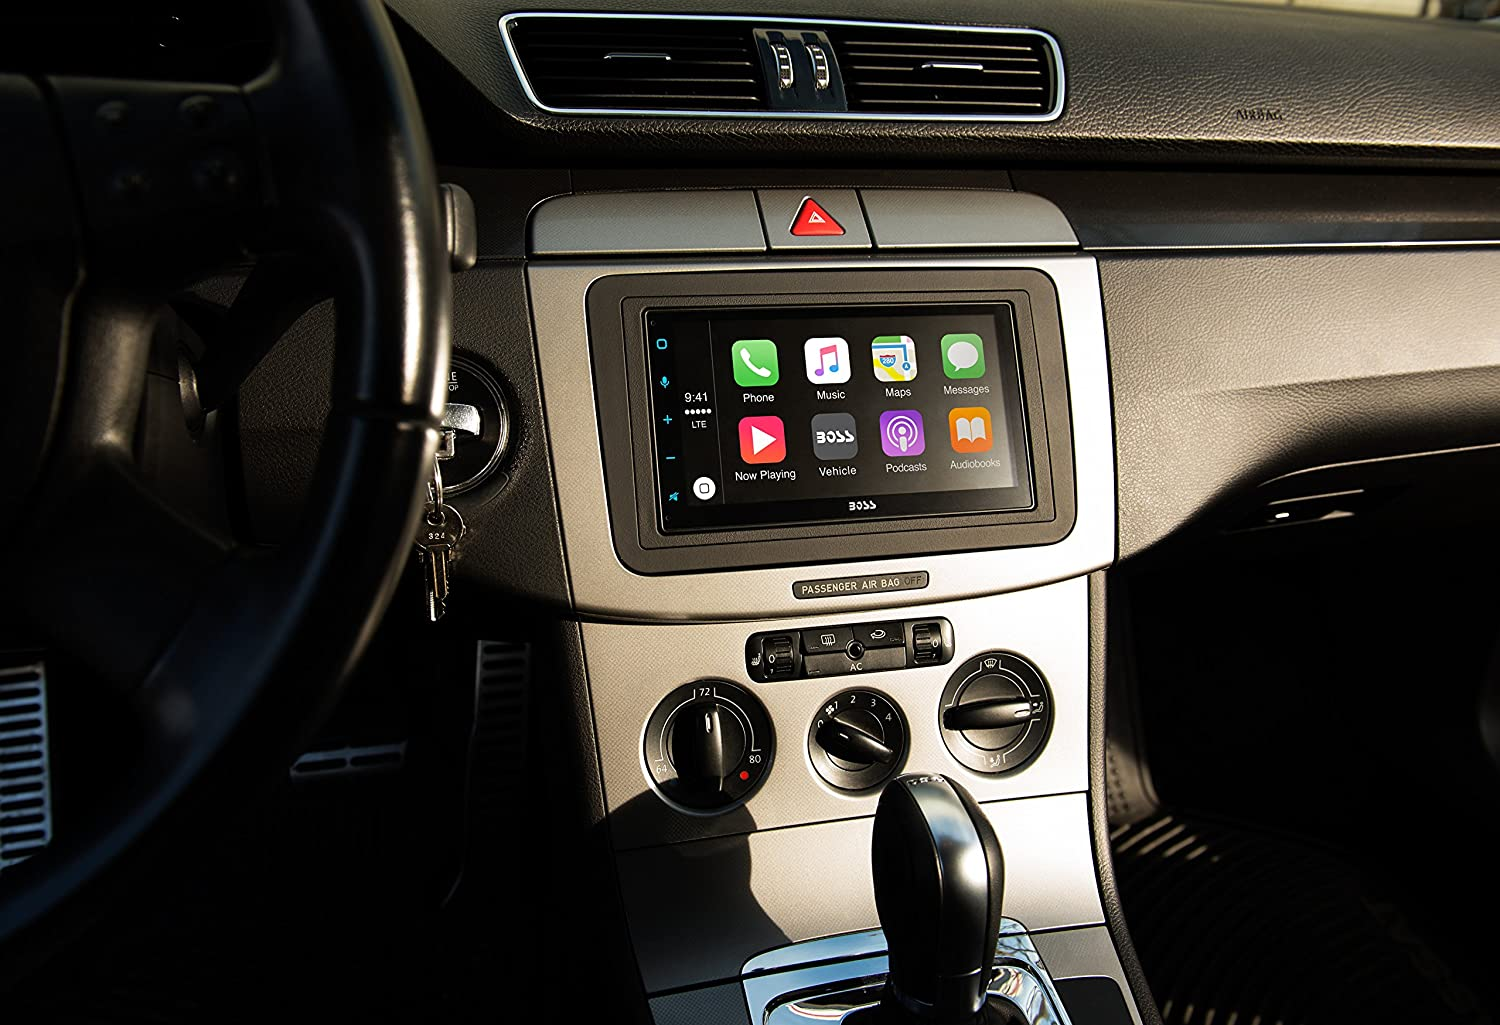 Boss Audio Bvcp9675a Double Din Apple Carplay Android Bose Car Lcd Wiring Auto Bluetooth 675 Capacitive Touchscreen Mech Less No Cd Dvd Am Fm Receiver